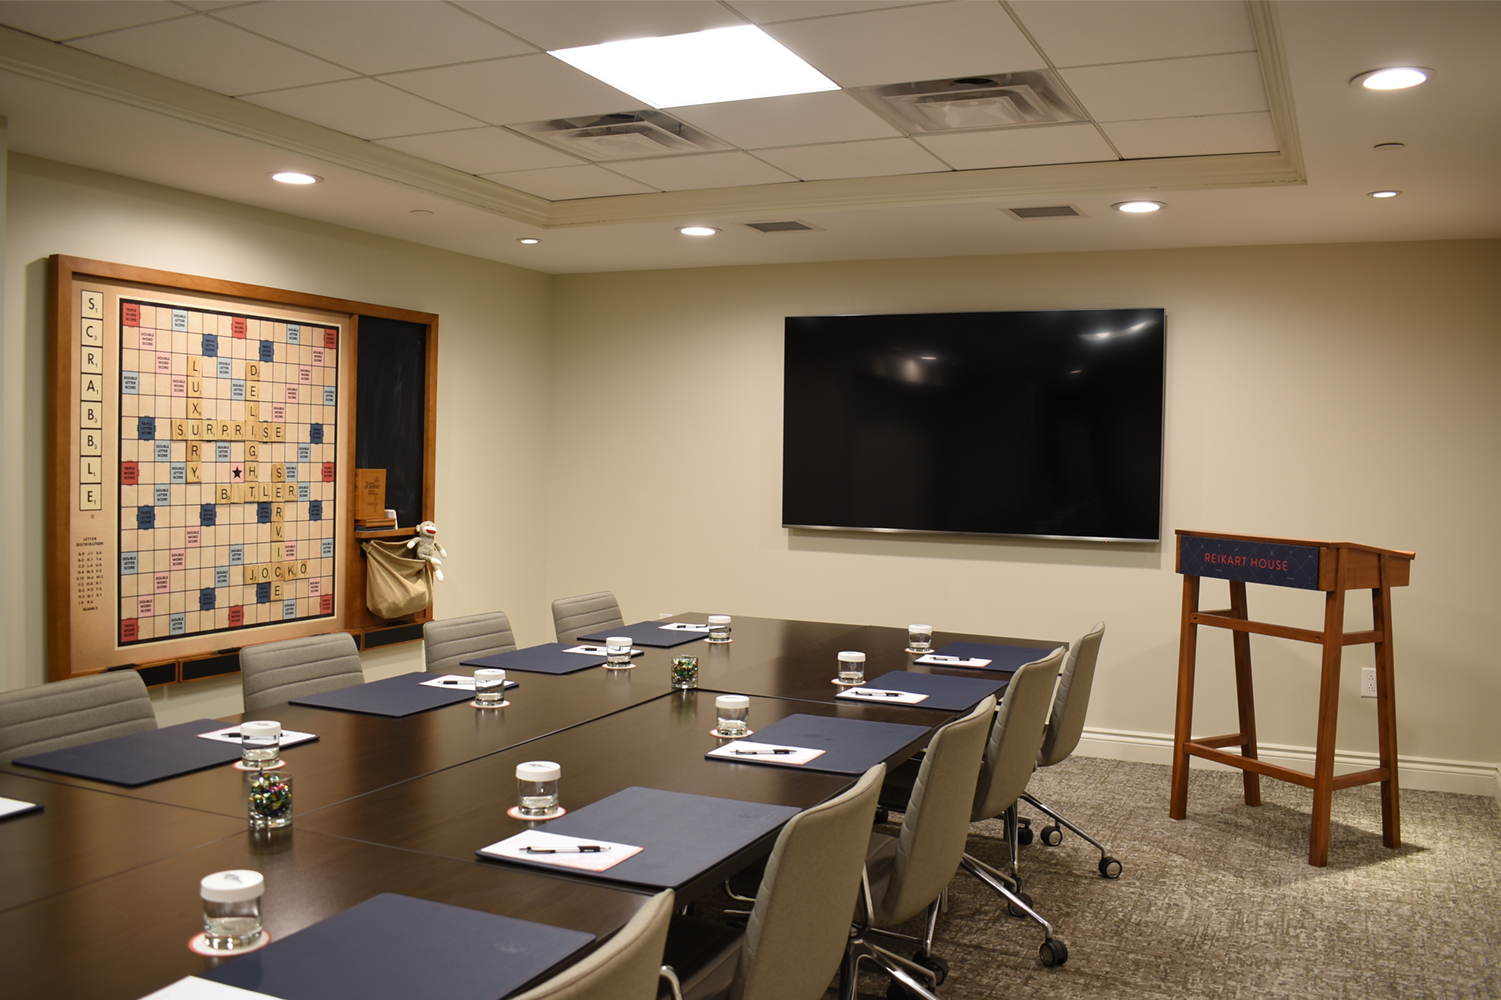 Conference room at Reikart House